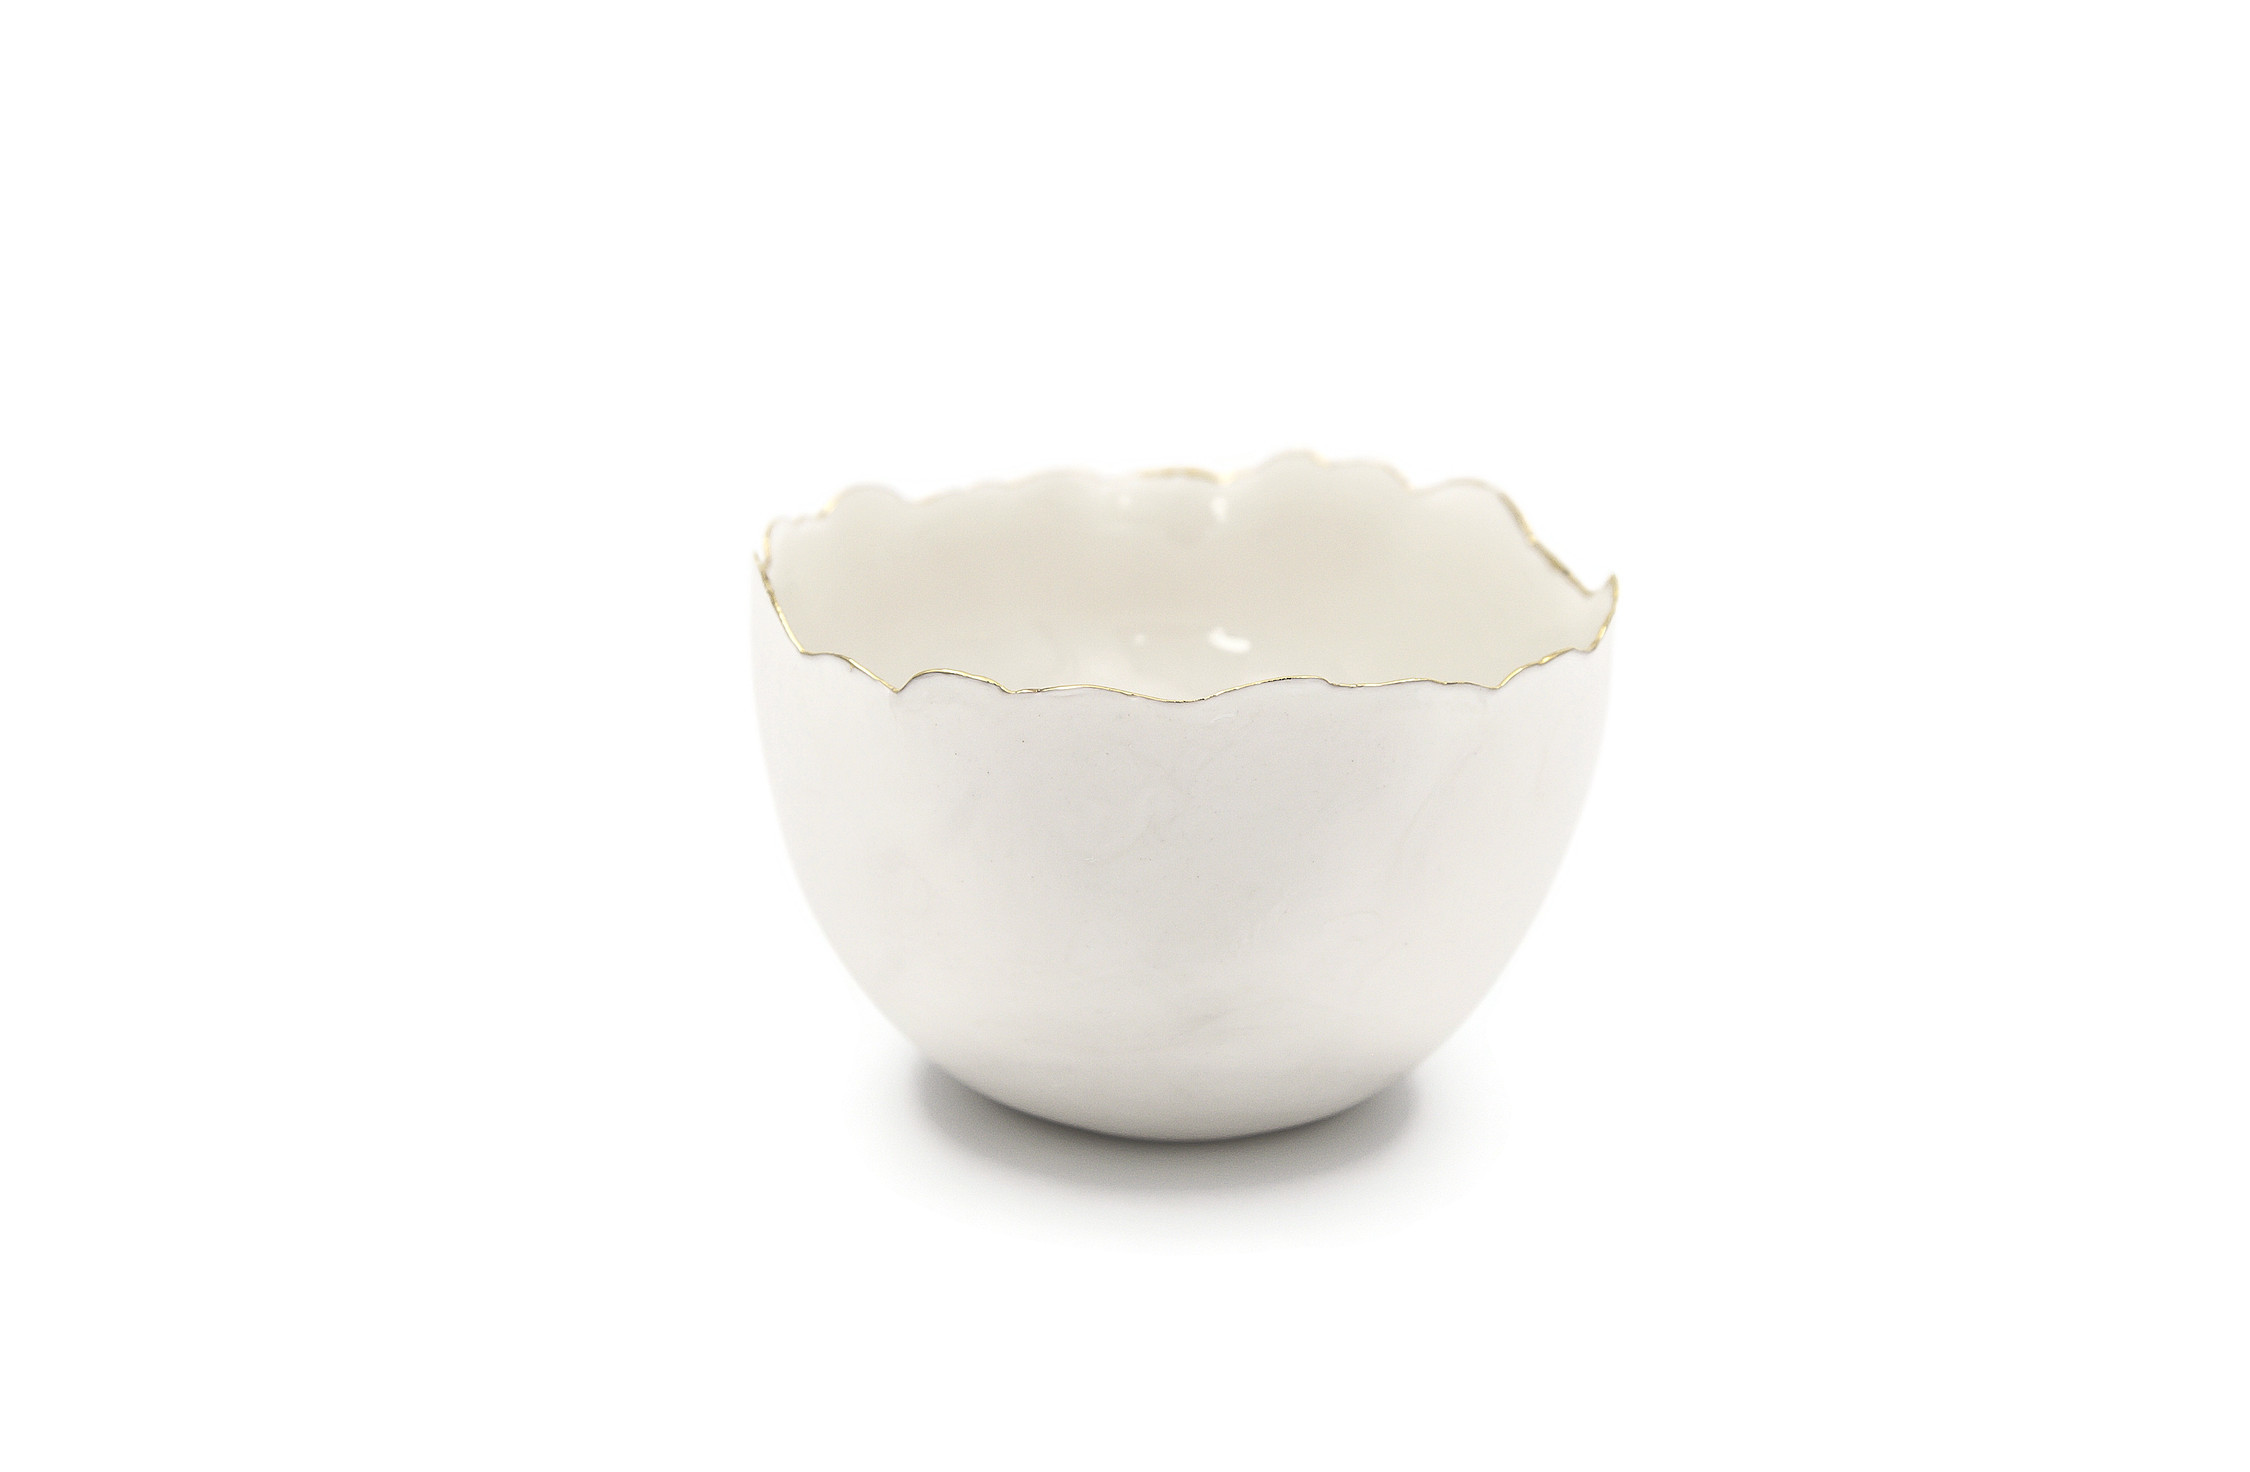 Collectible Porcelain White Bowls